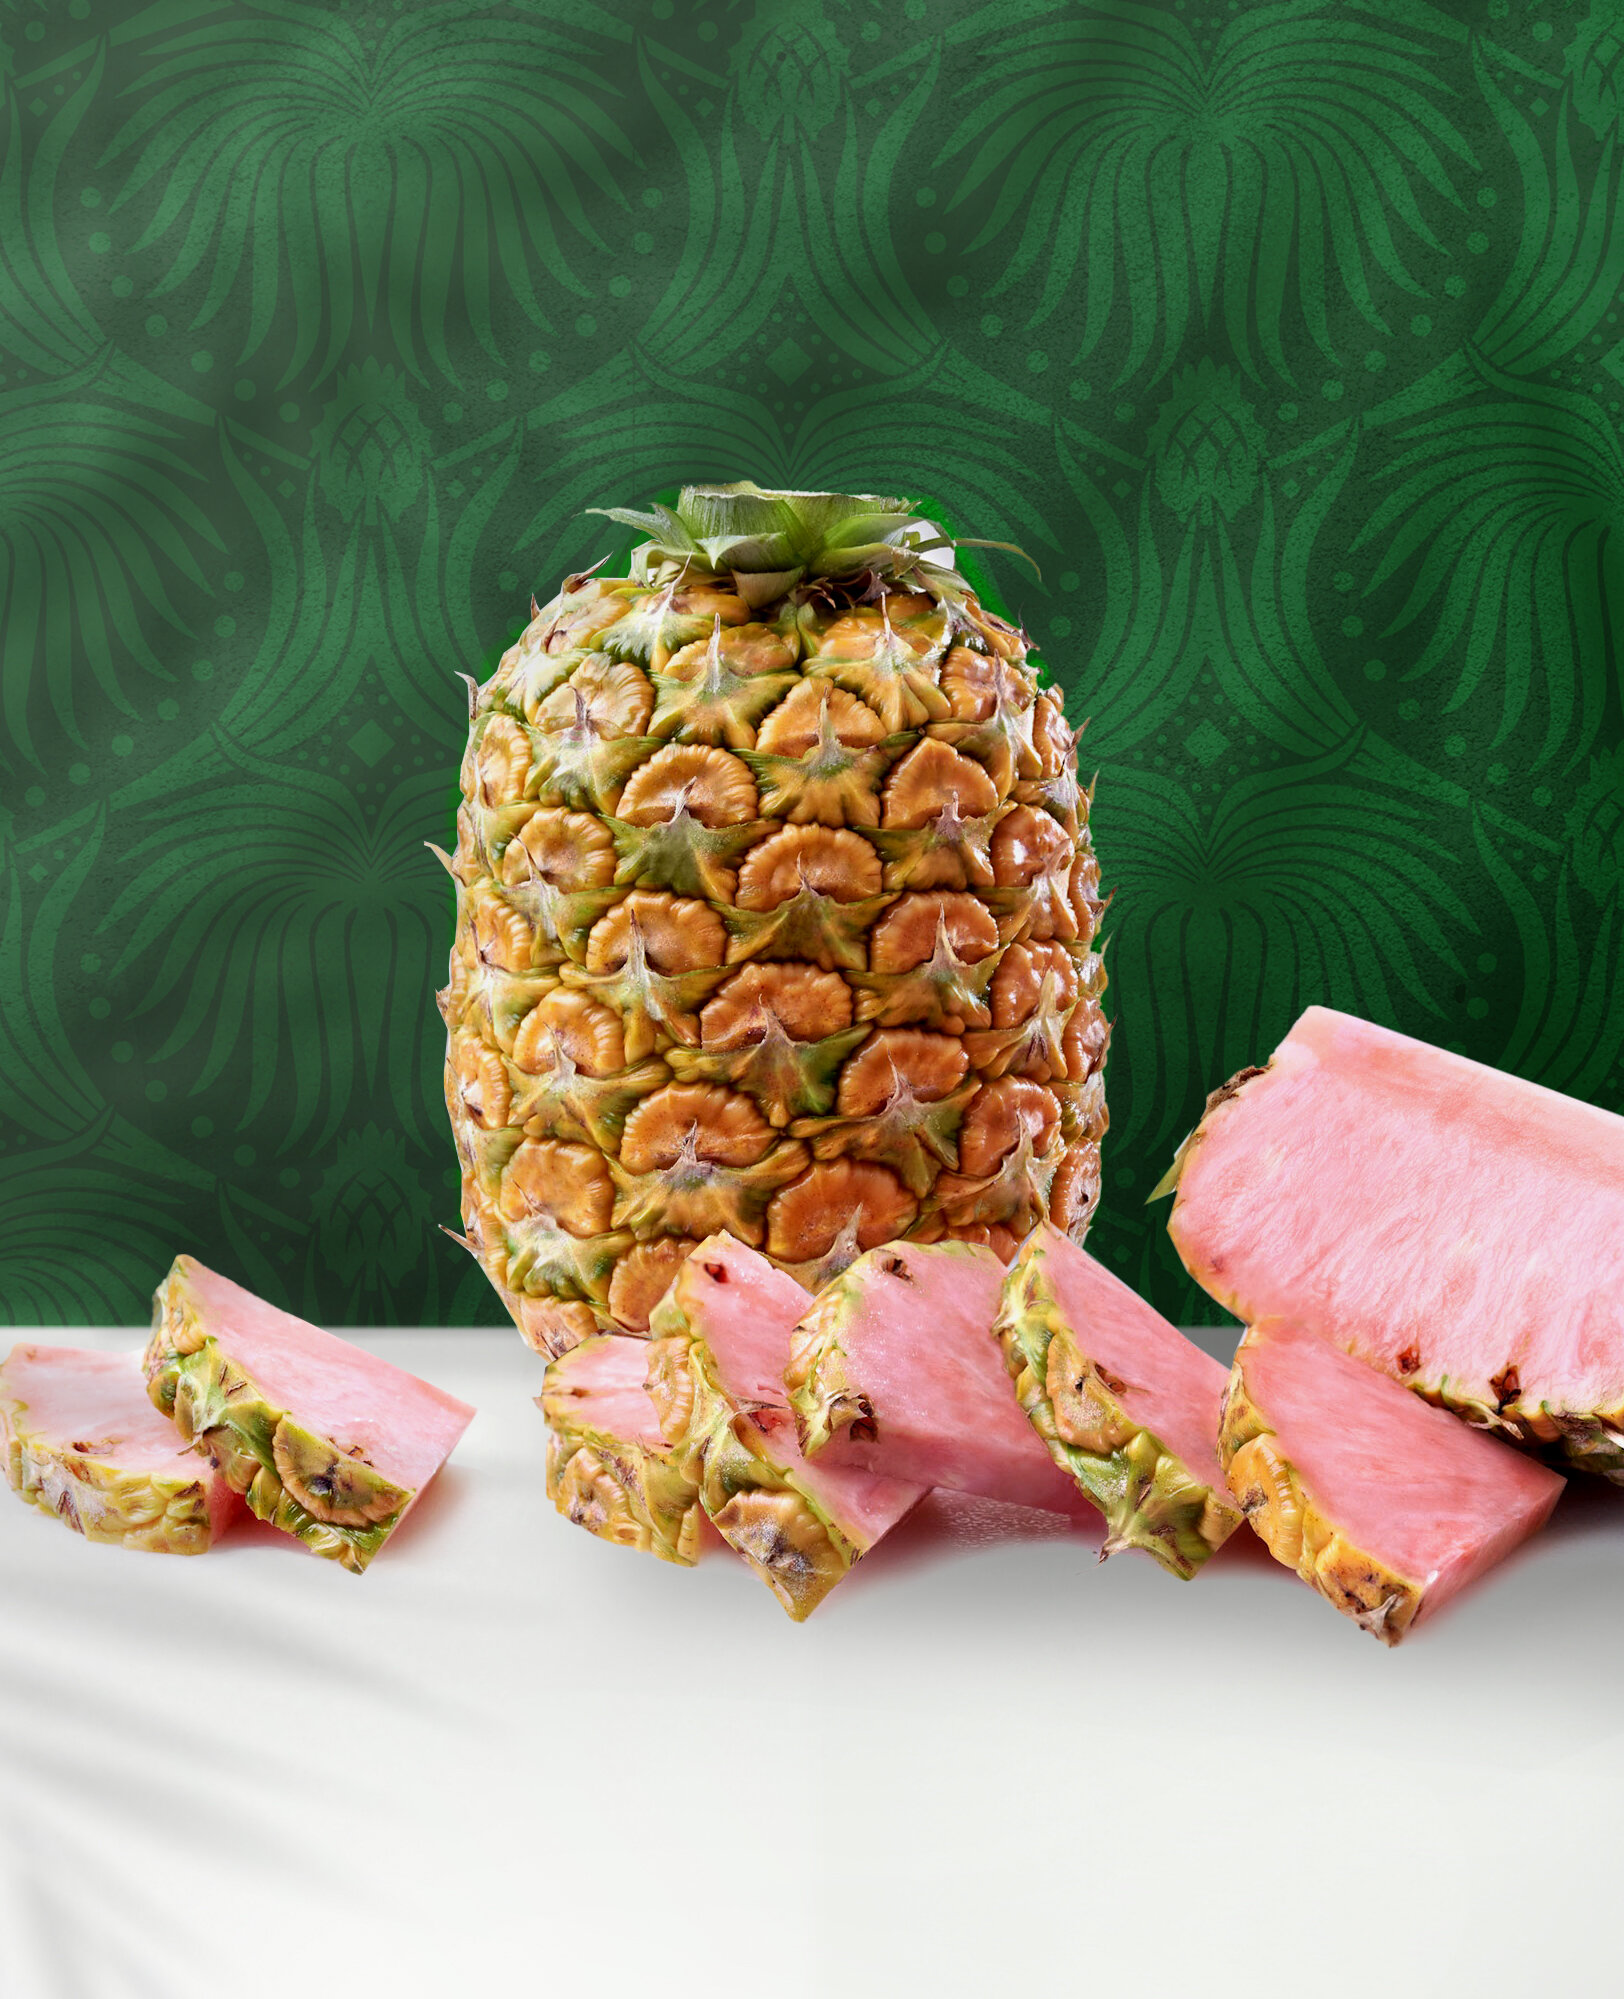 Pinkglow™ pineapple